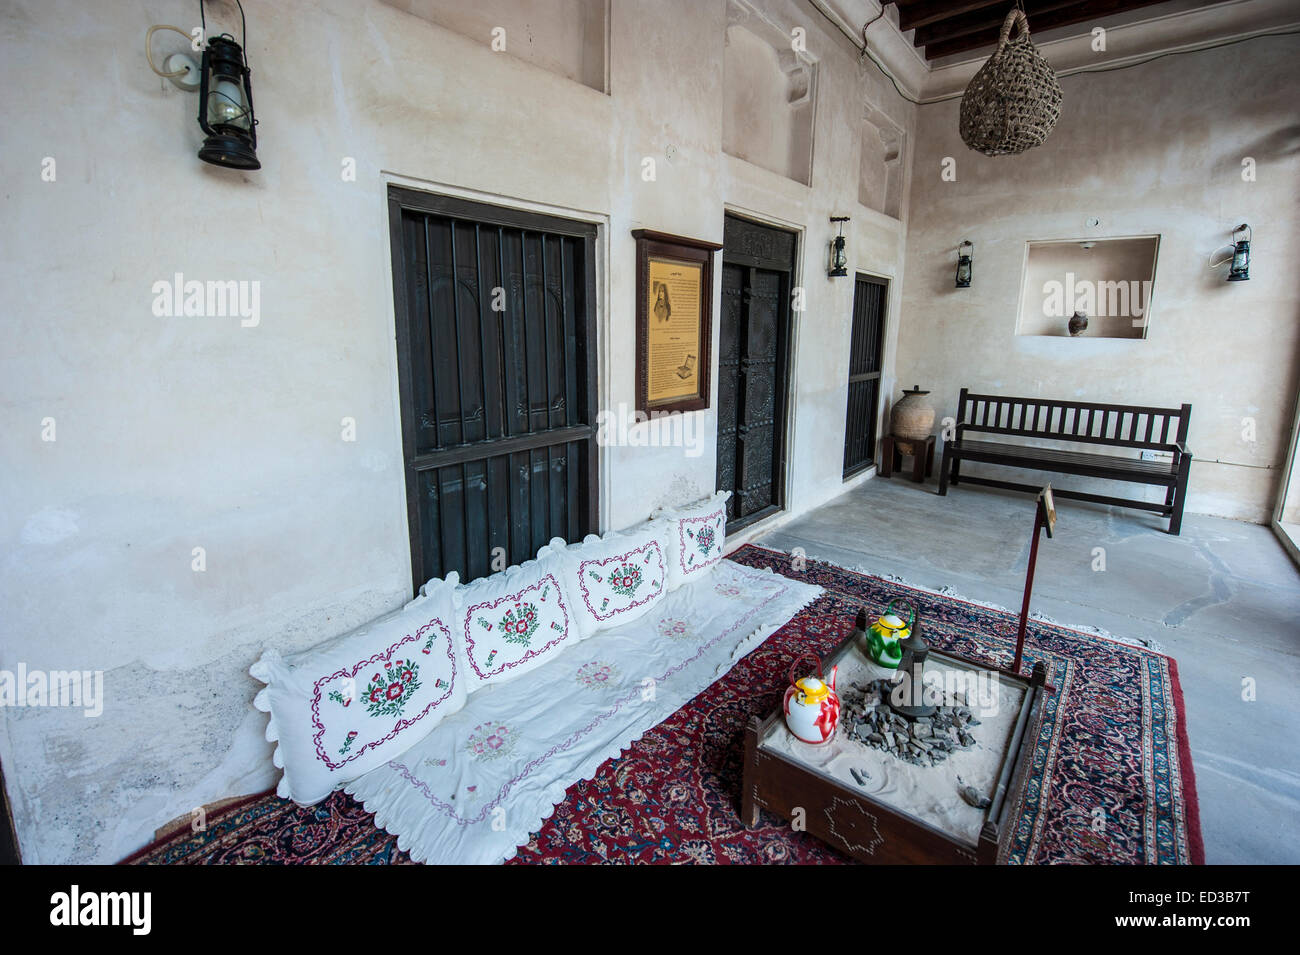 Heritage House In Old Dubai, U.A.E.